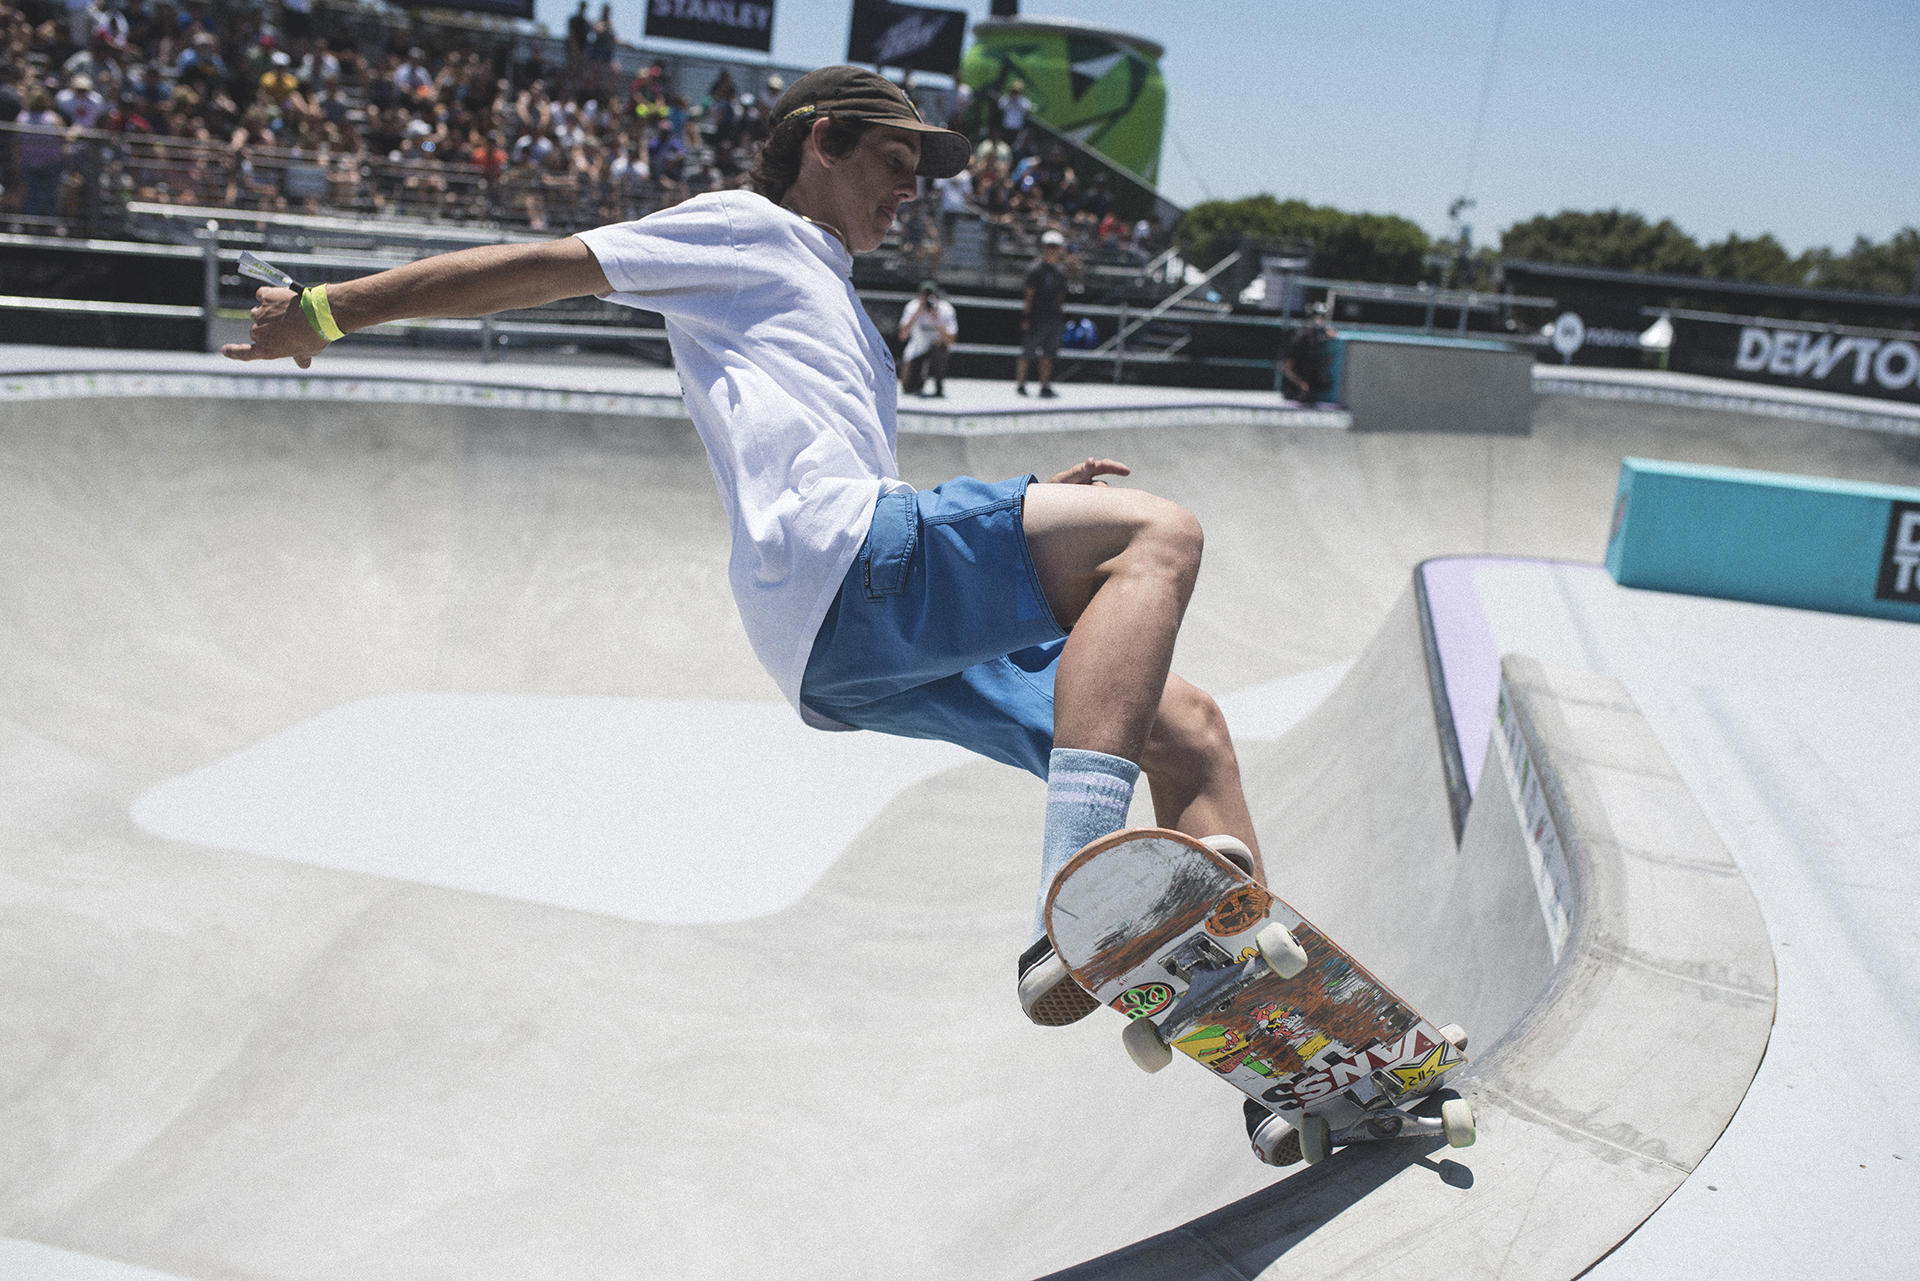 Skateboarder at Dew Tour in Long Beach